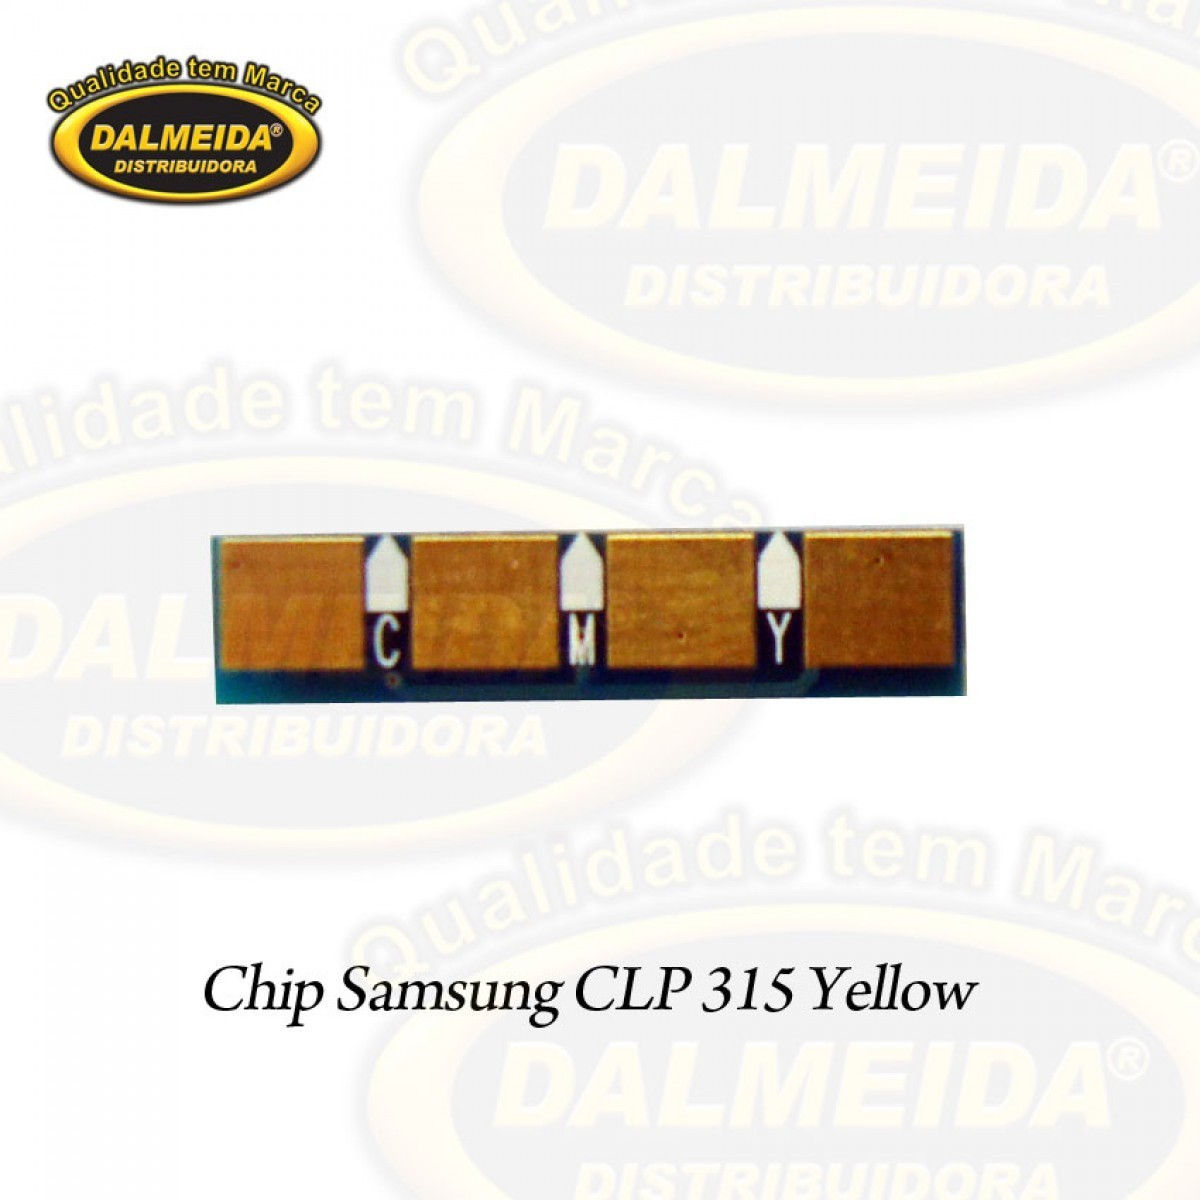 CHIP SAMSUNG CLP 315/ YELLOW